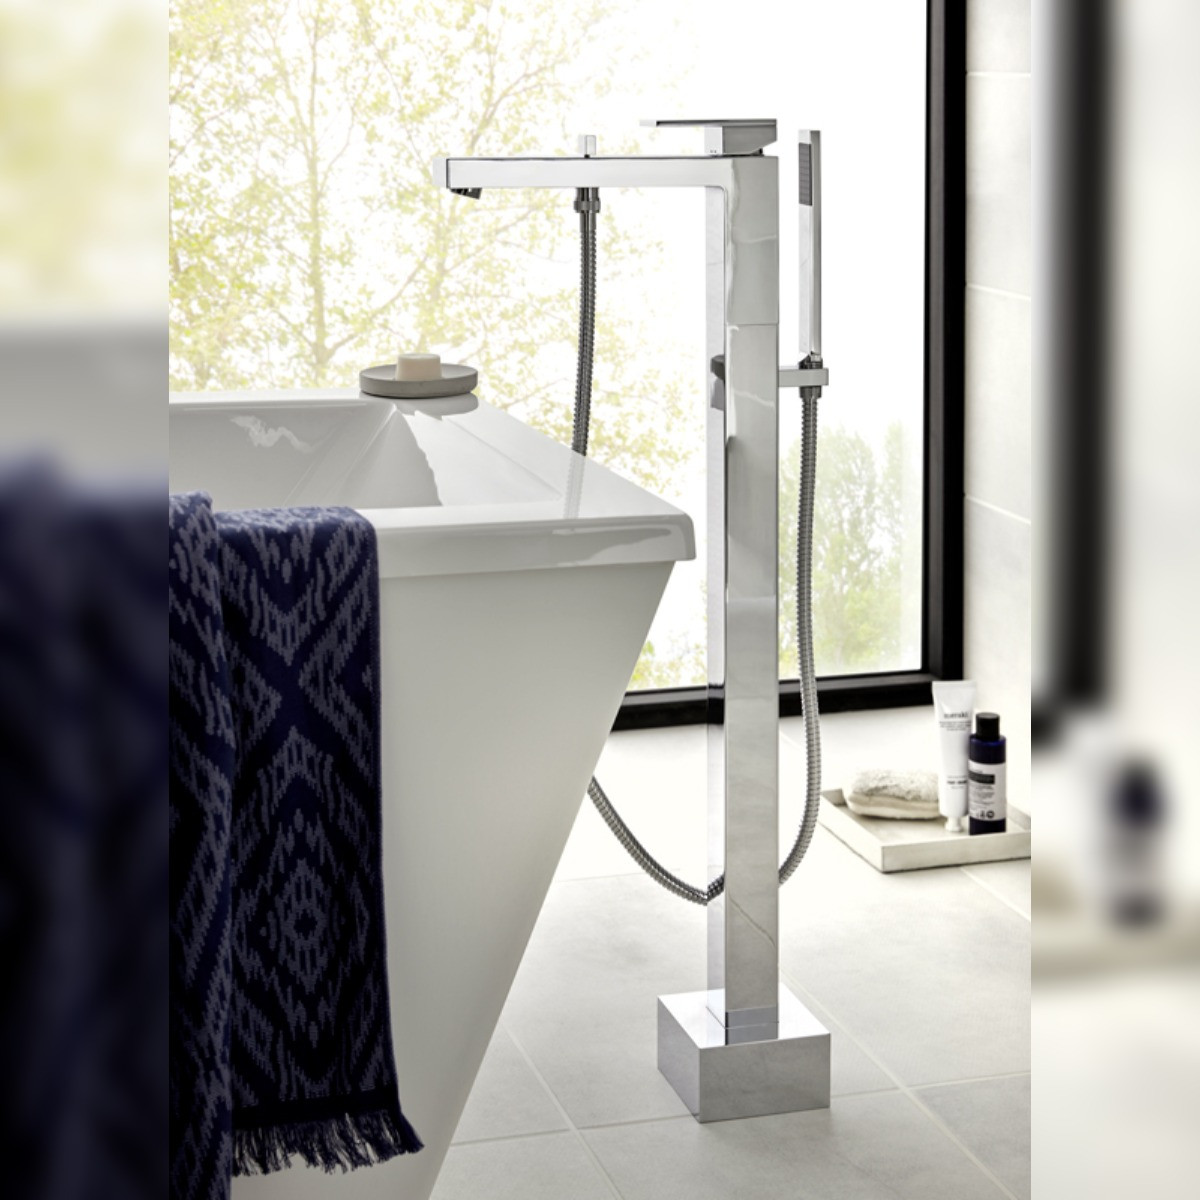 Notion Floor Mounted Bath Shower Mixer